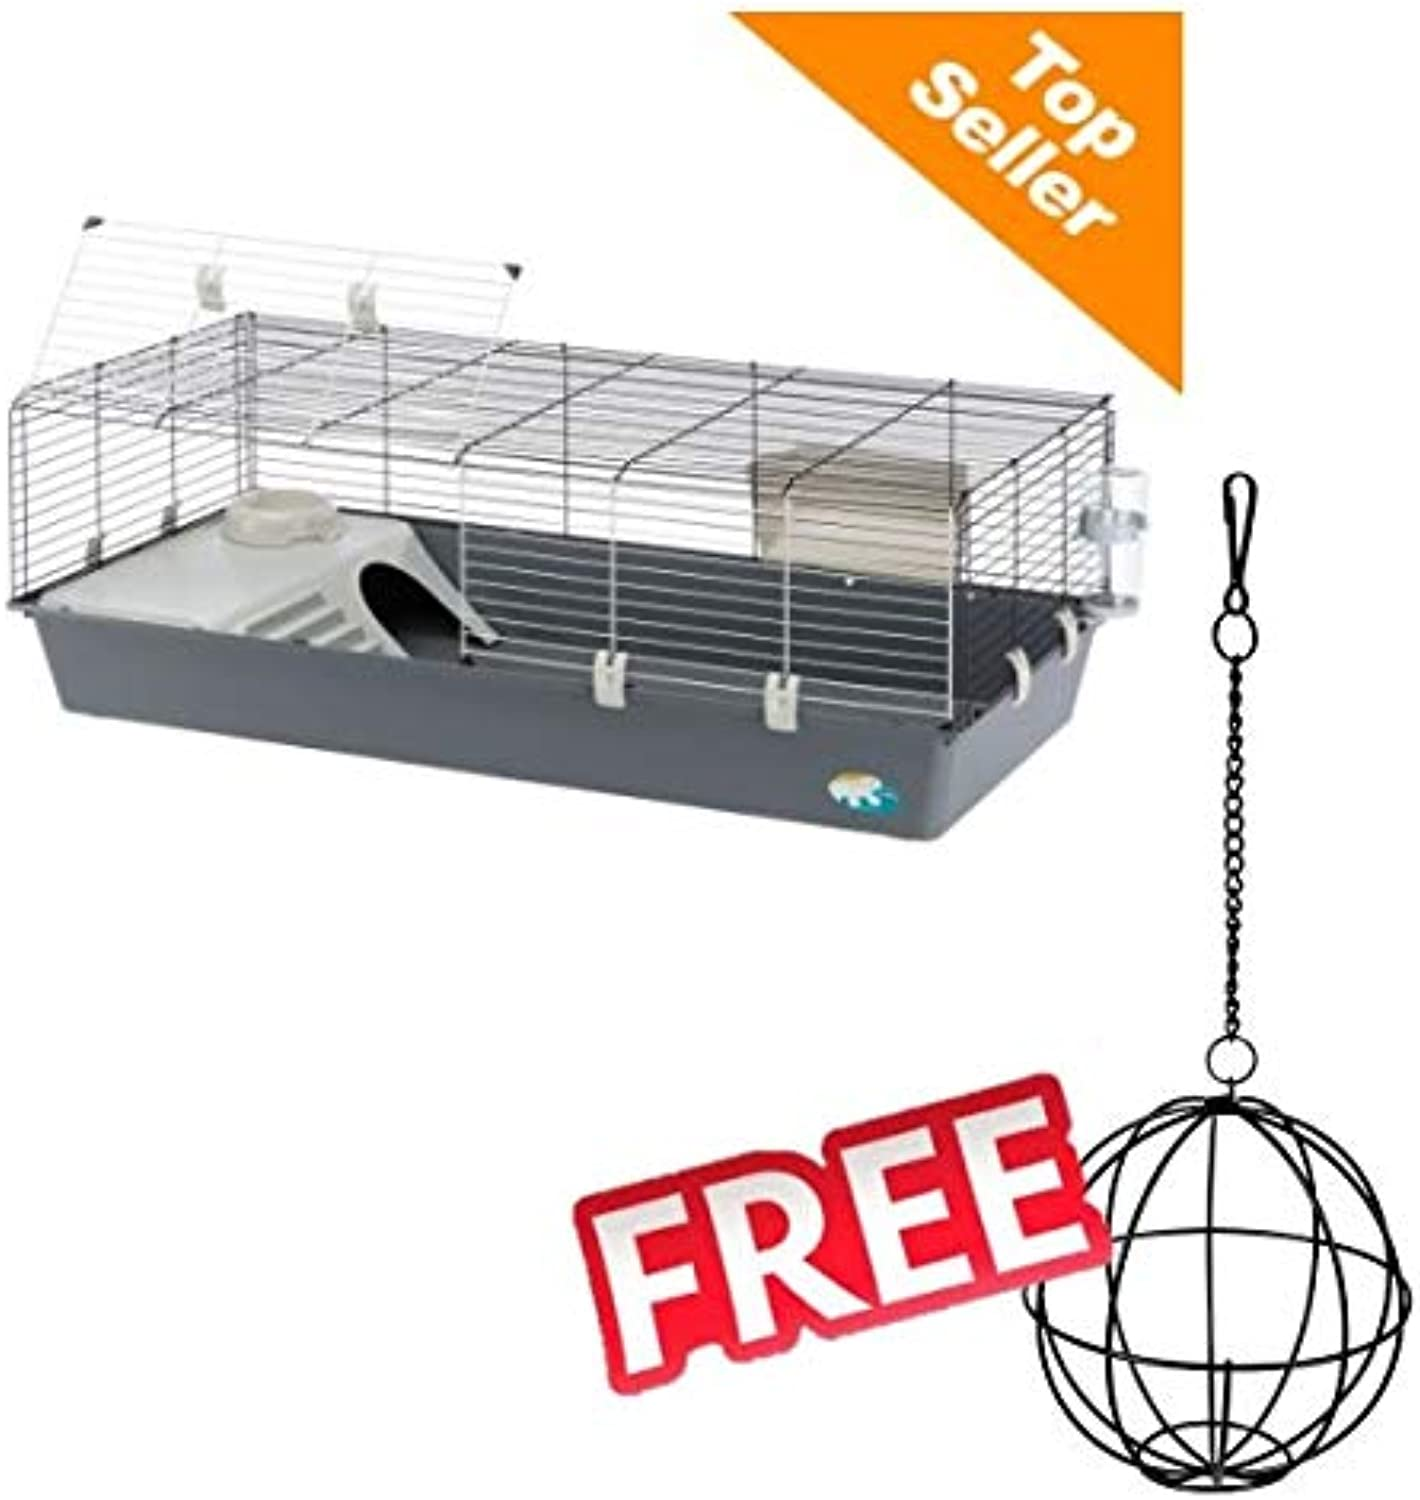 Ferplast Rabbit & Guinea Pig Cage 120 Spacious with Split Folding Screen with Basic Equipment Bar Spacing 2.5cm. Easy Access Waterbased Grating Colour Grey 118 x 58.5 x 51.5 cm FREE Trixie Food Ball